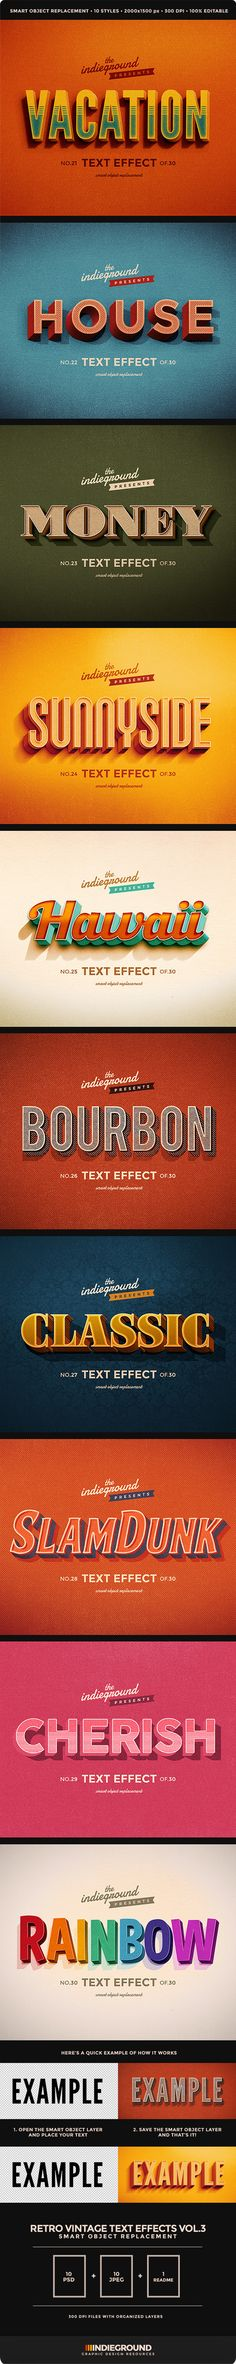 Retro Vintage Text Effects Vol. 3 - Text Effects Actions - these are all beautiful